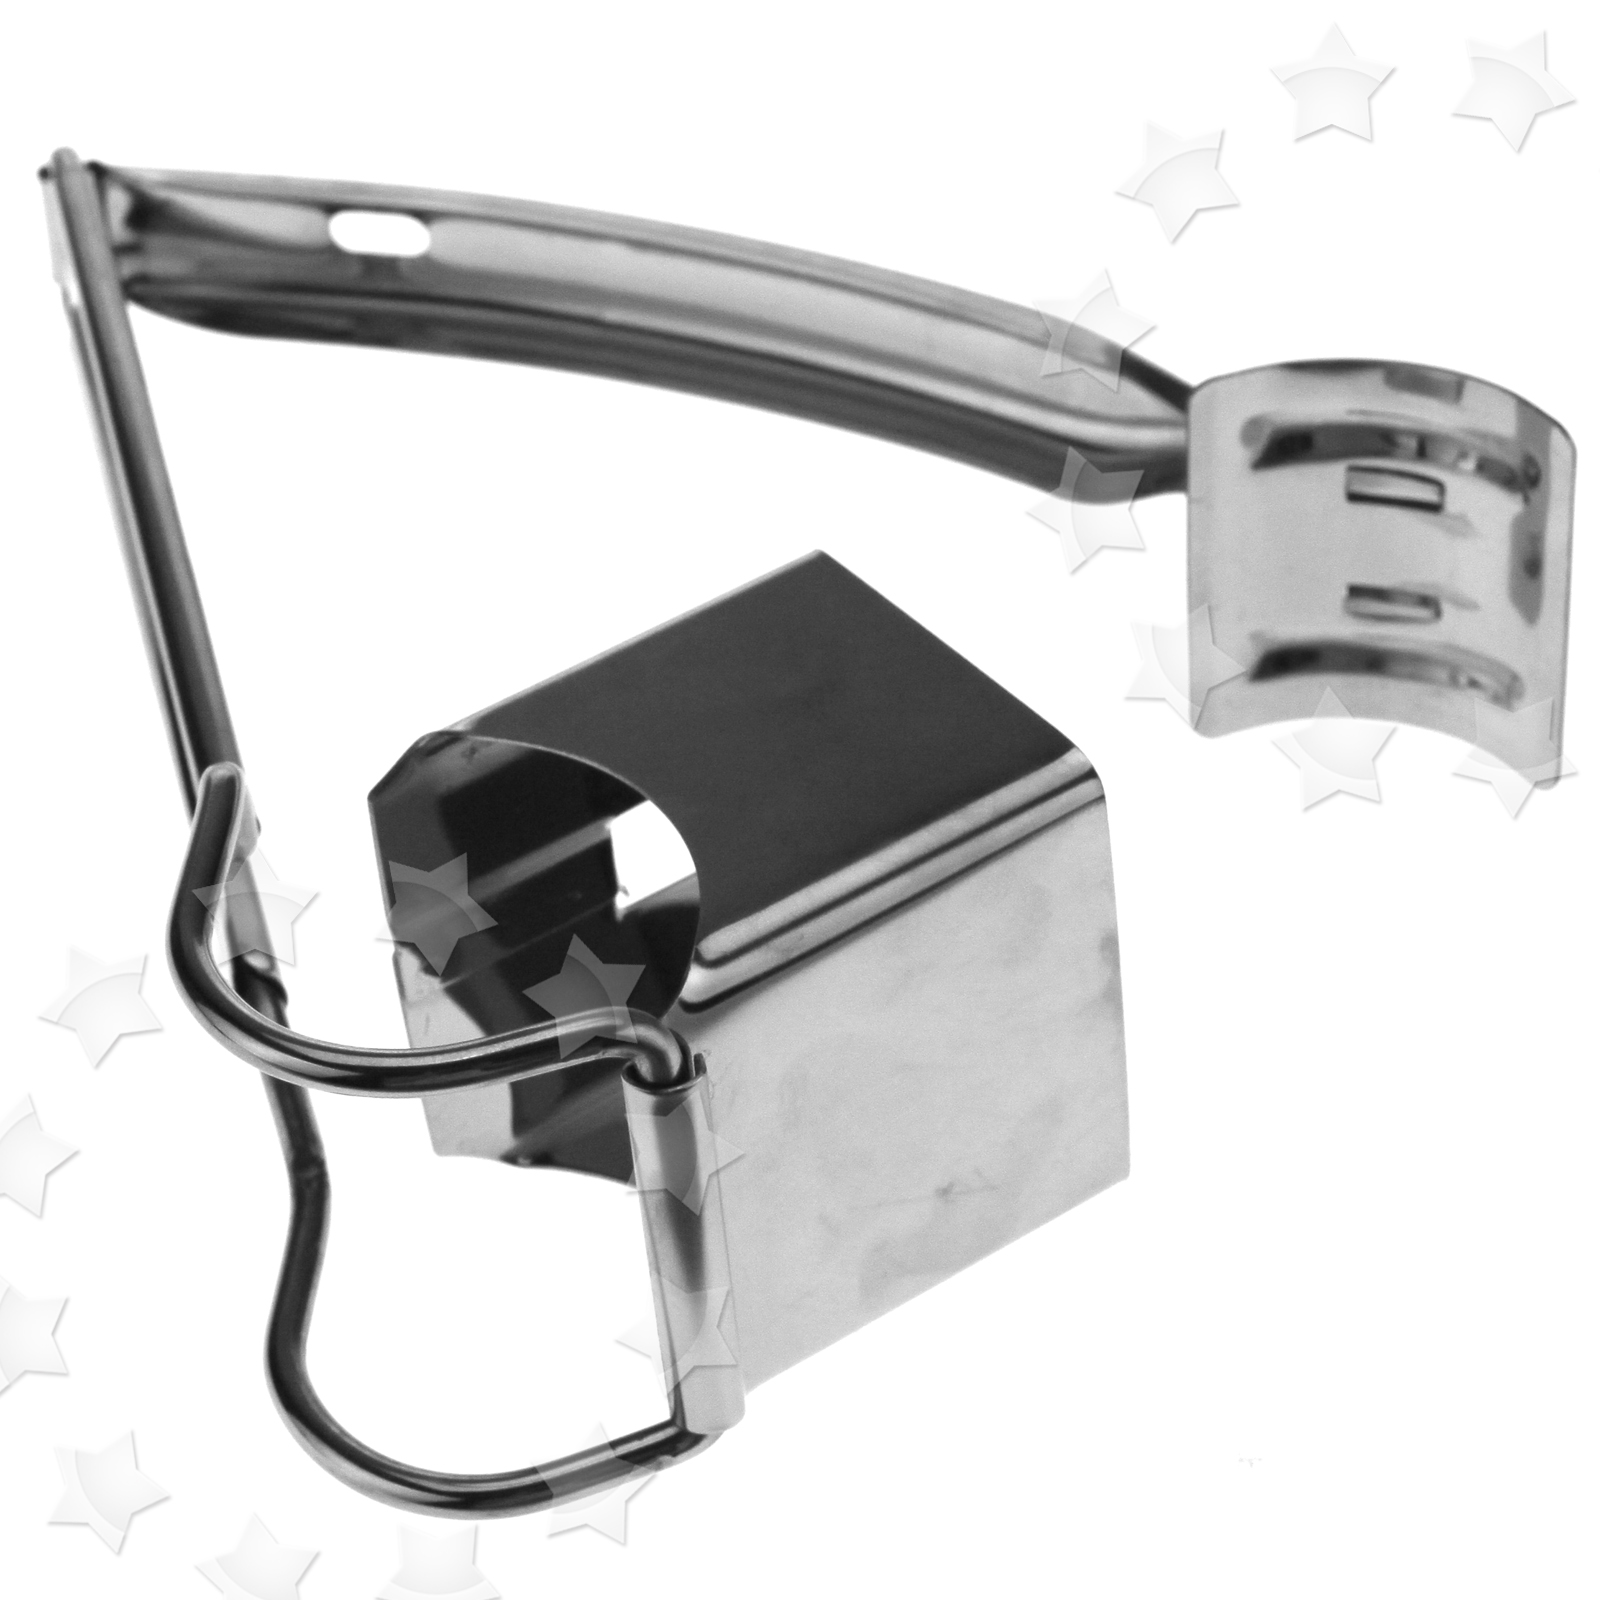 Stainless Steel Cooking Tool Cheese Grater Shredder Rotary ...